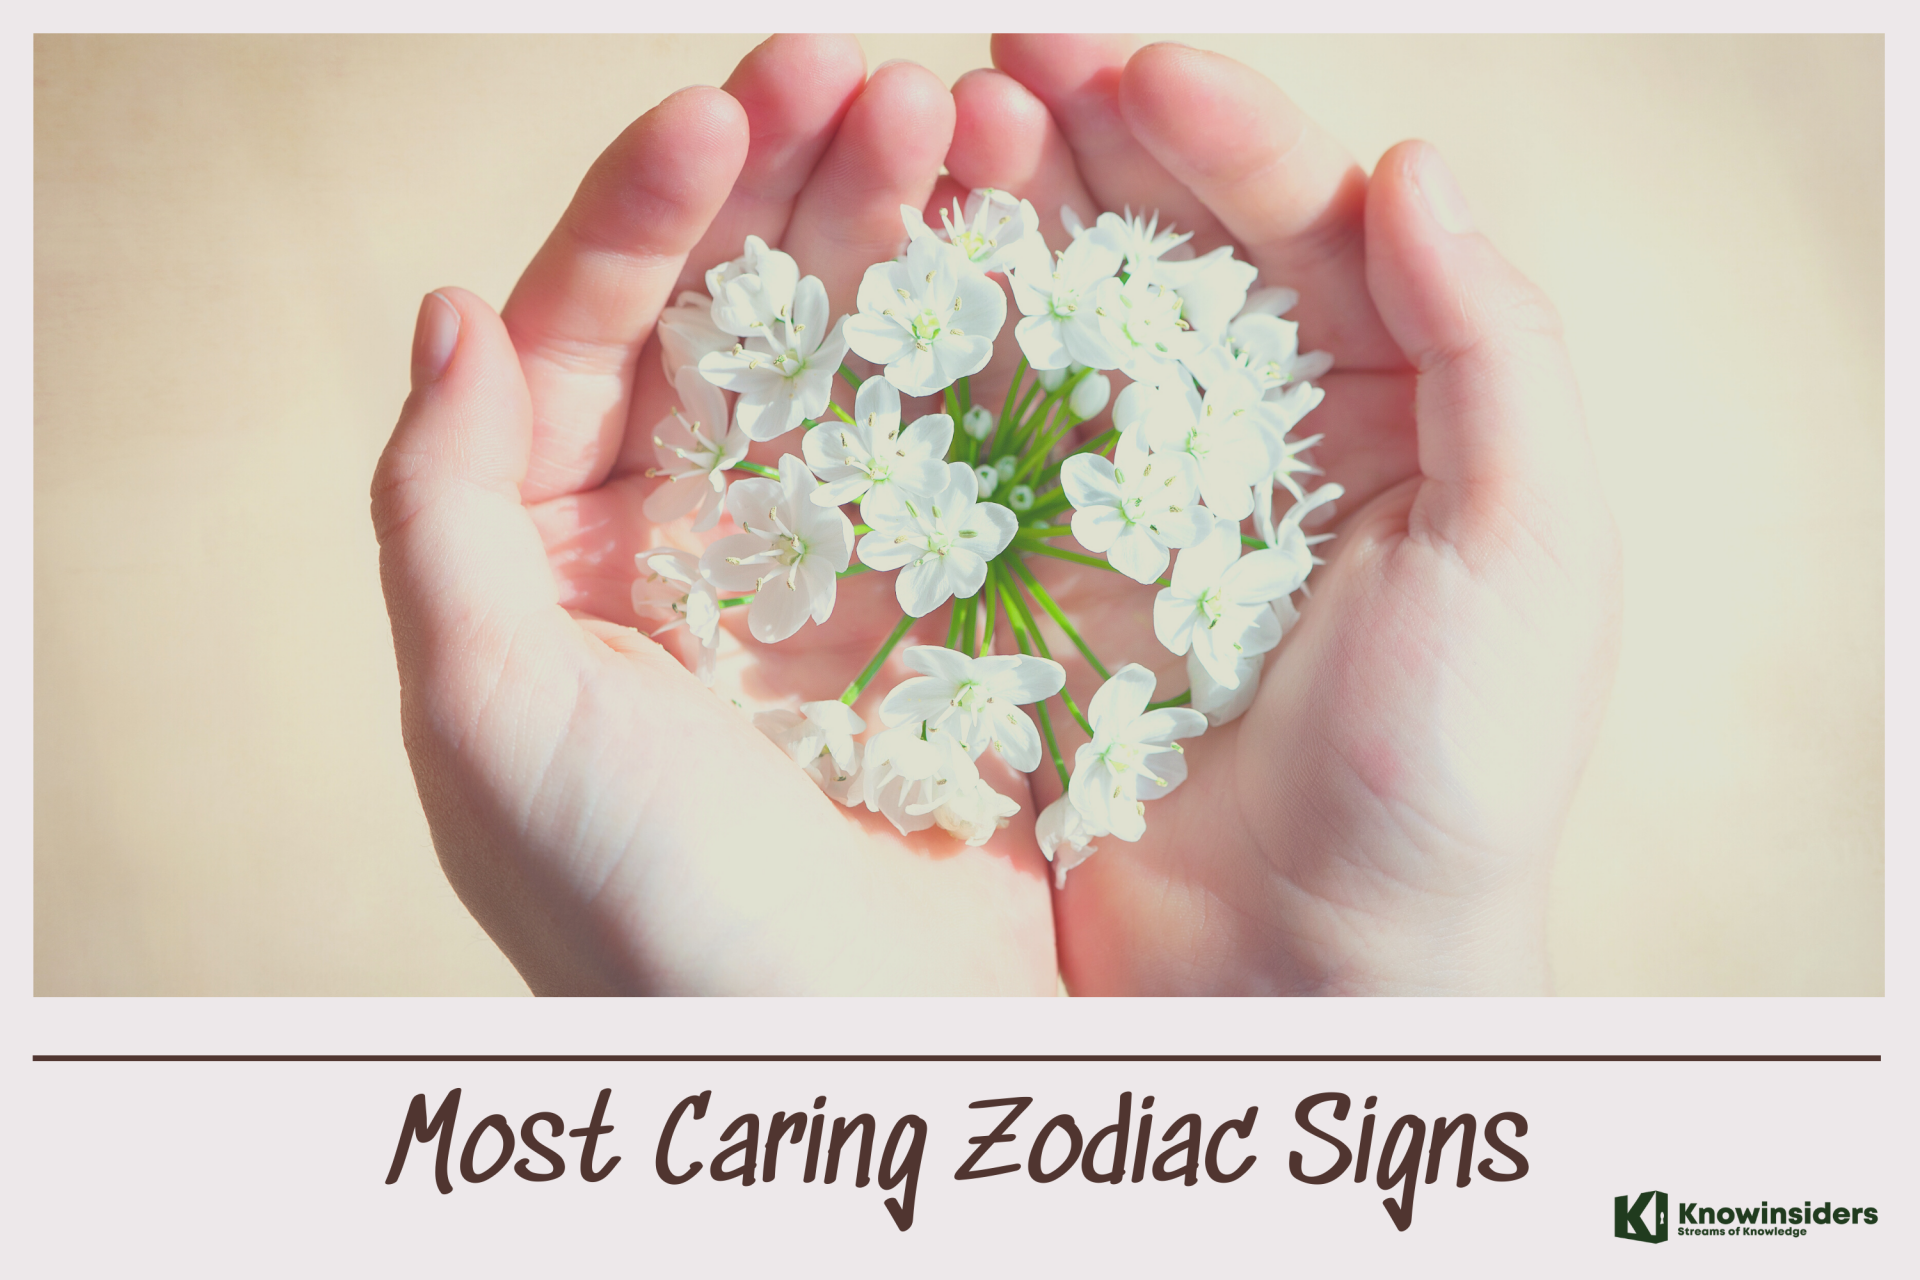 Top 5 Most Caring Zodiac Signs - Astrology